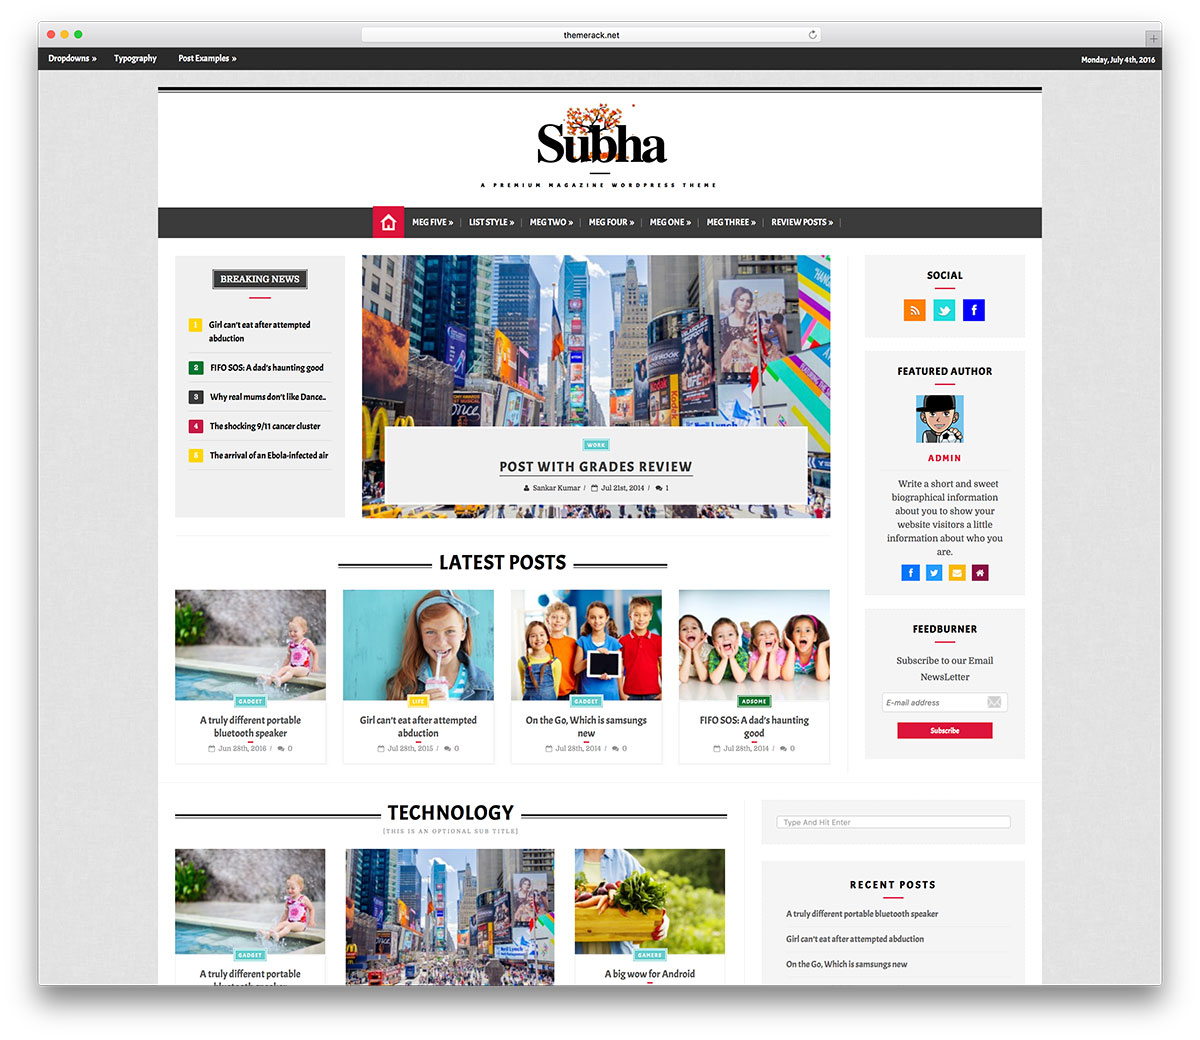 subha-simple-magazine-wordpress-websitte-template